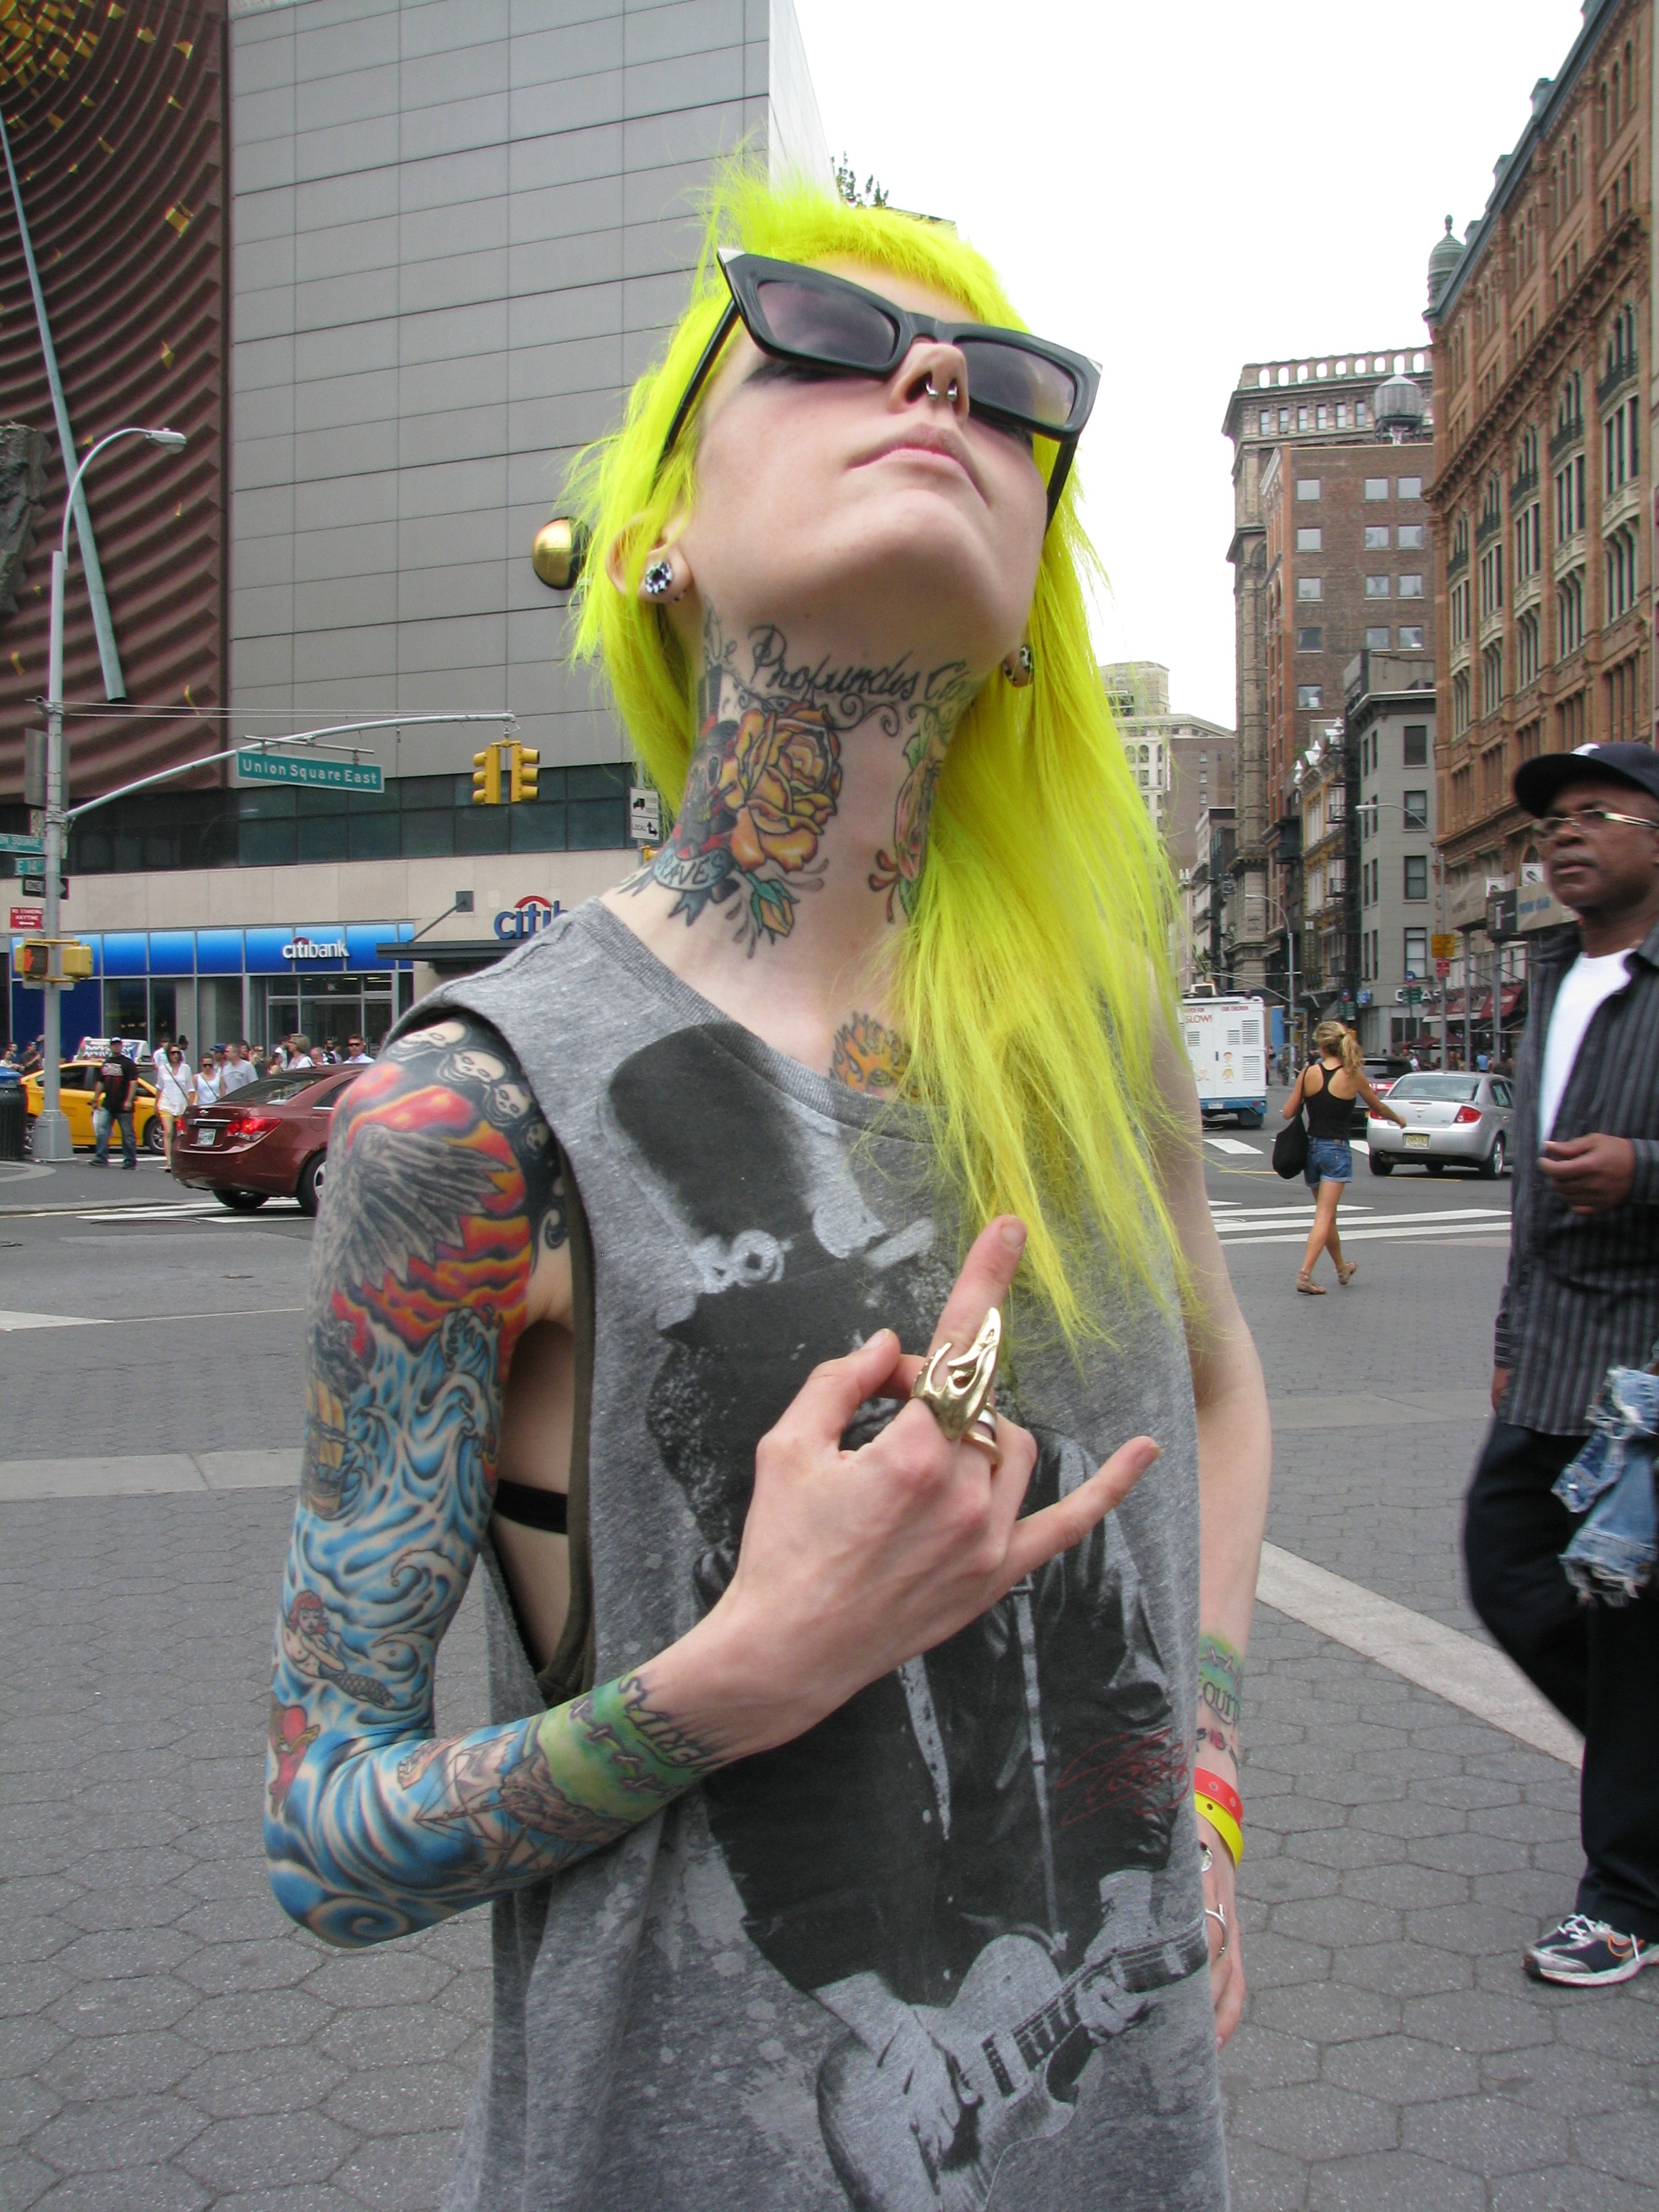 punk girl with yellow hair